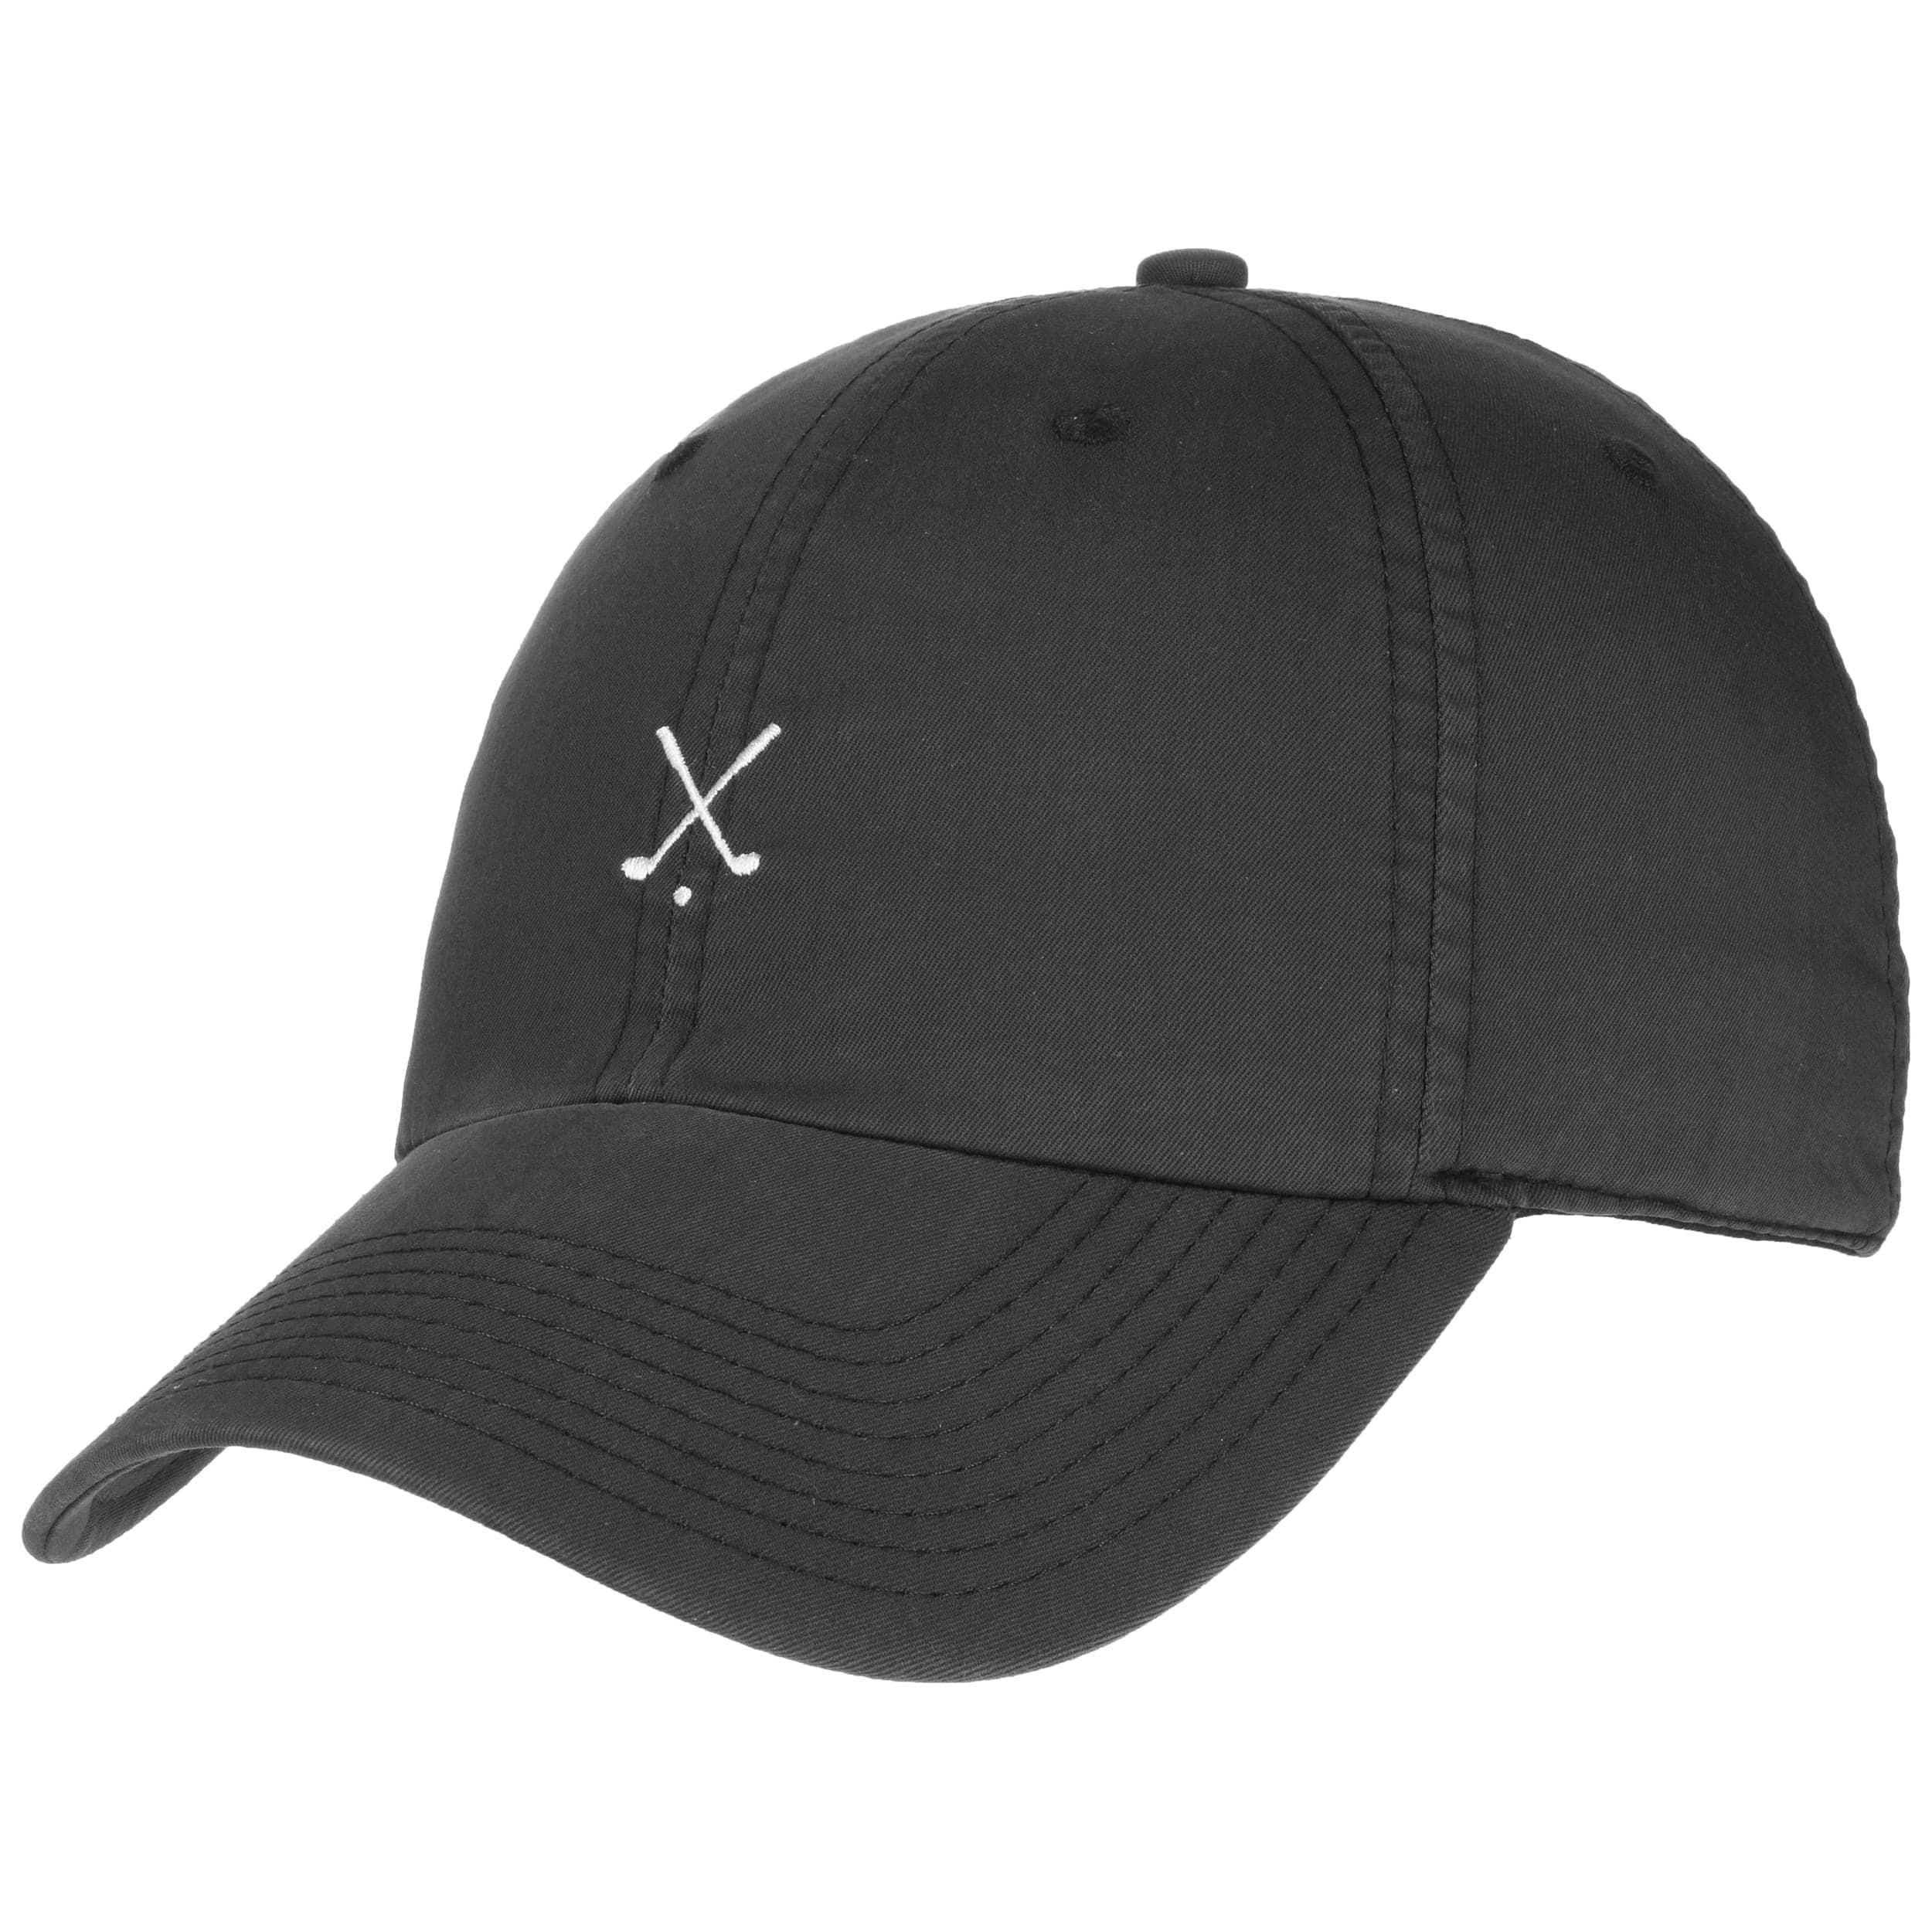 ... gris oscuro 5 · Gorra Heritage 86 by Nike - negro 2 ... c87ce743715